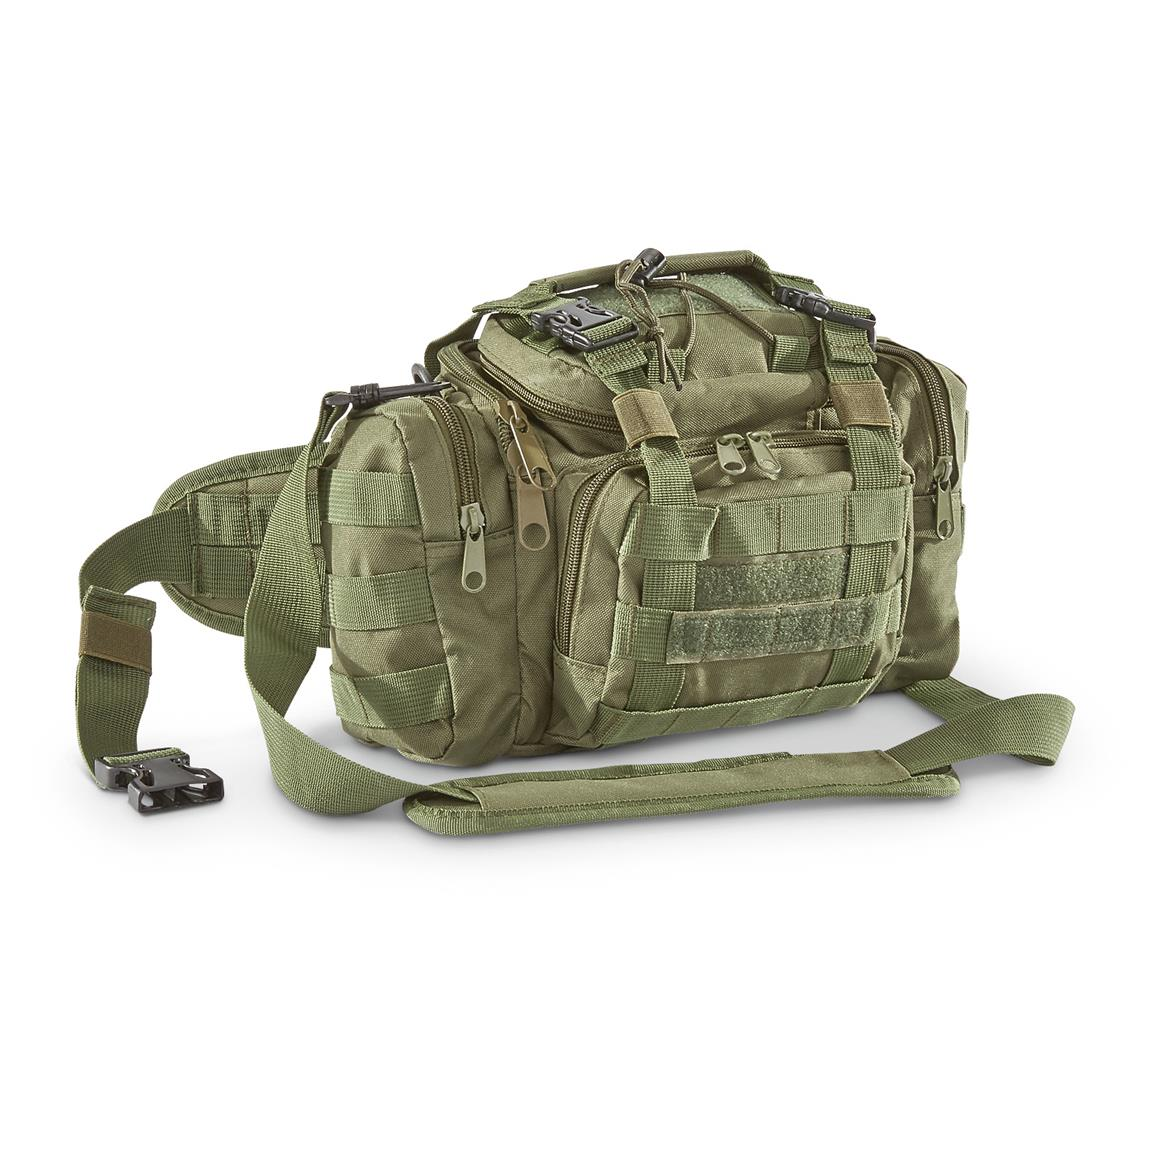 Tactical Shooter's Shoulder Bag, Olive Drab